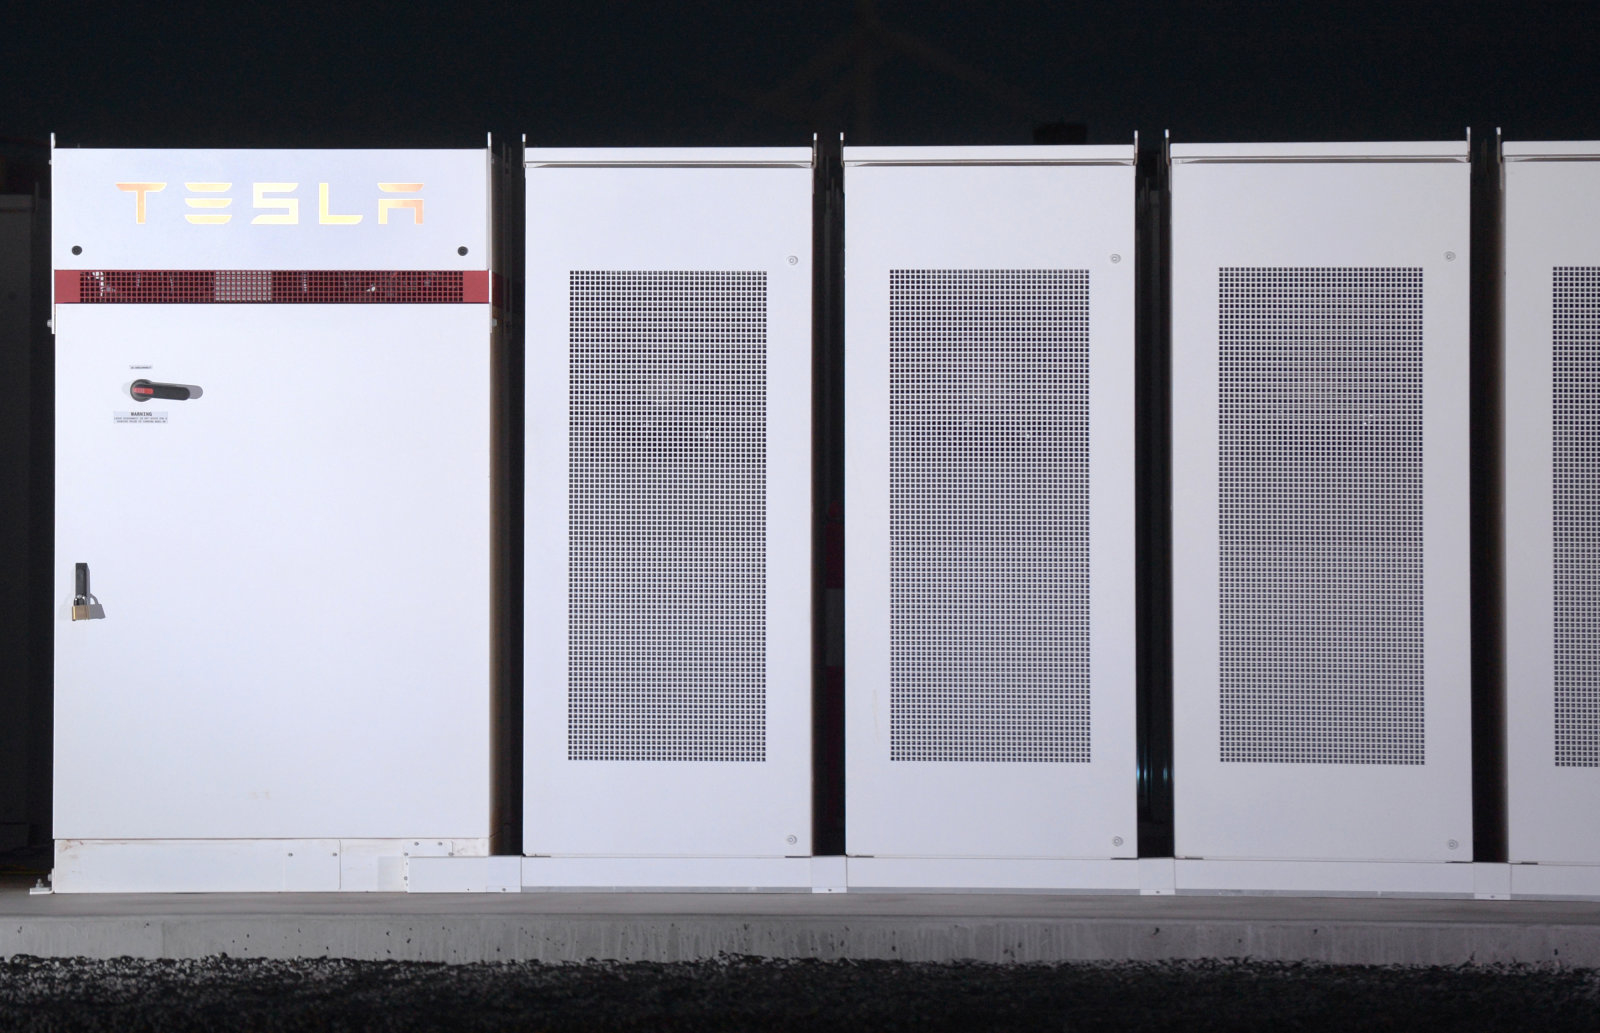 Tesla Inc. Powerpacks that will be used to form the world's largest lithium-ion battery stand on display at the Hornsdale wind farm, operated by Neoen SAS, near Jamestown, South Australia, on Friday, Sept. 29, 2017. Against a backdrop of wind turbines 150 miles (241 kilometers) north of Adelaide, Tesla Chief Executive Officer Elon Musk announced a contract to build the world's largest lithium-ion battery system had been signed with South Australia's power distributor, triggering a 100-day self-imposed deadline to install the electricity storage system. Photographer: Carla Gottgens/Bloomberg via Getty Images